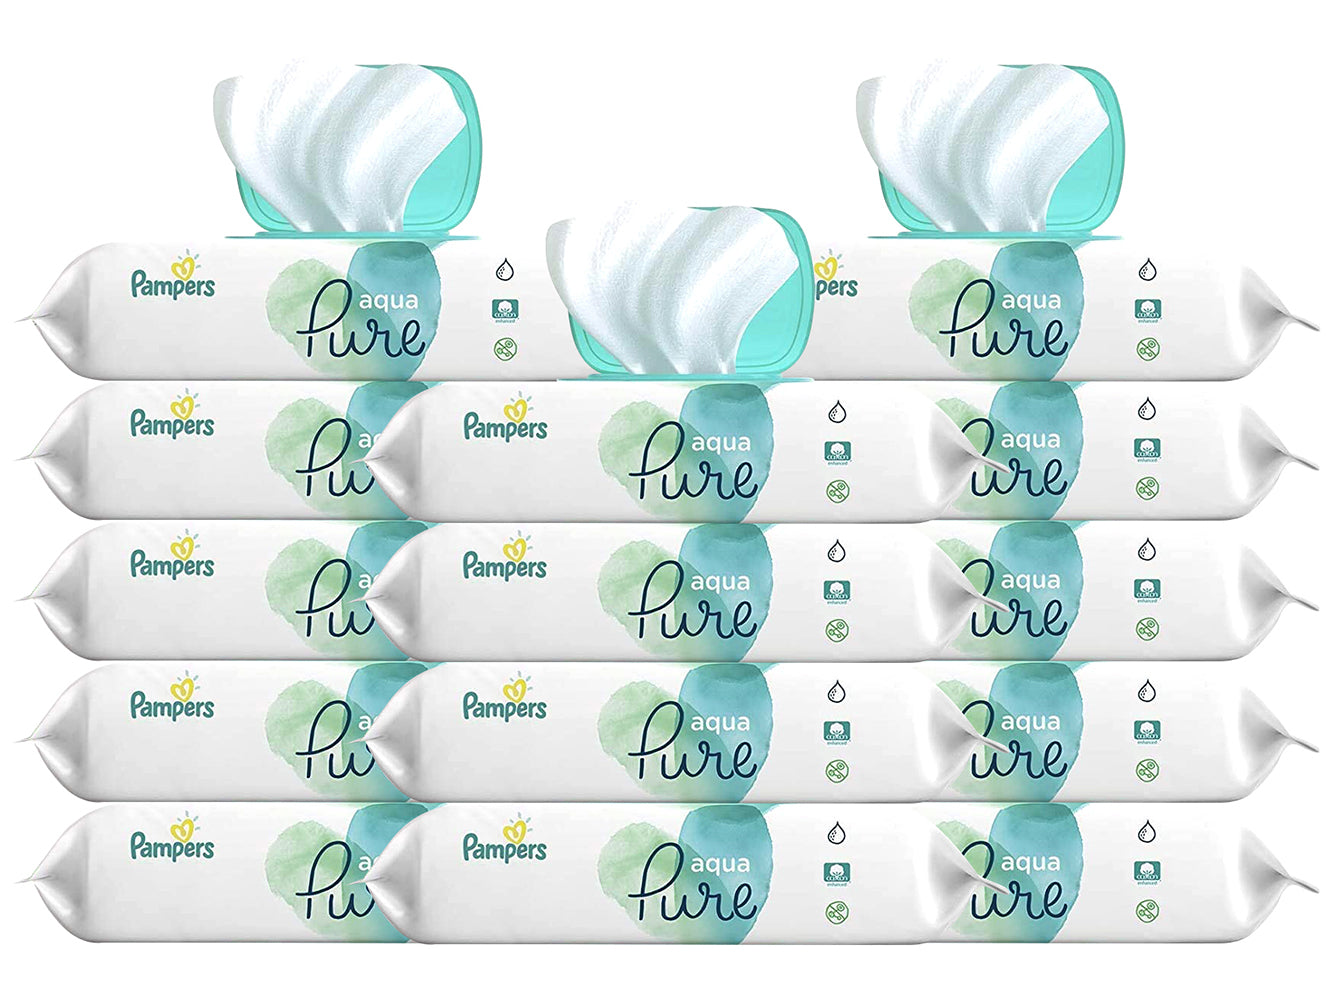 Pampers Aqua Pure Sensitive Water Baby Diaper Wipes, Hypoallergenic and Unscented, 14 x Pop-Top Packs, 672 Count